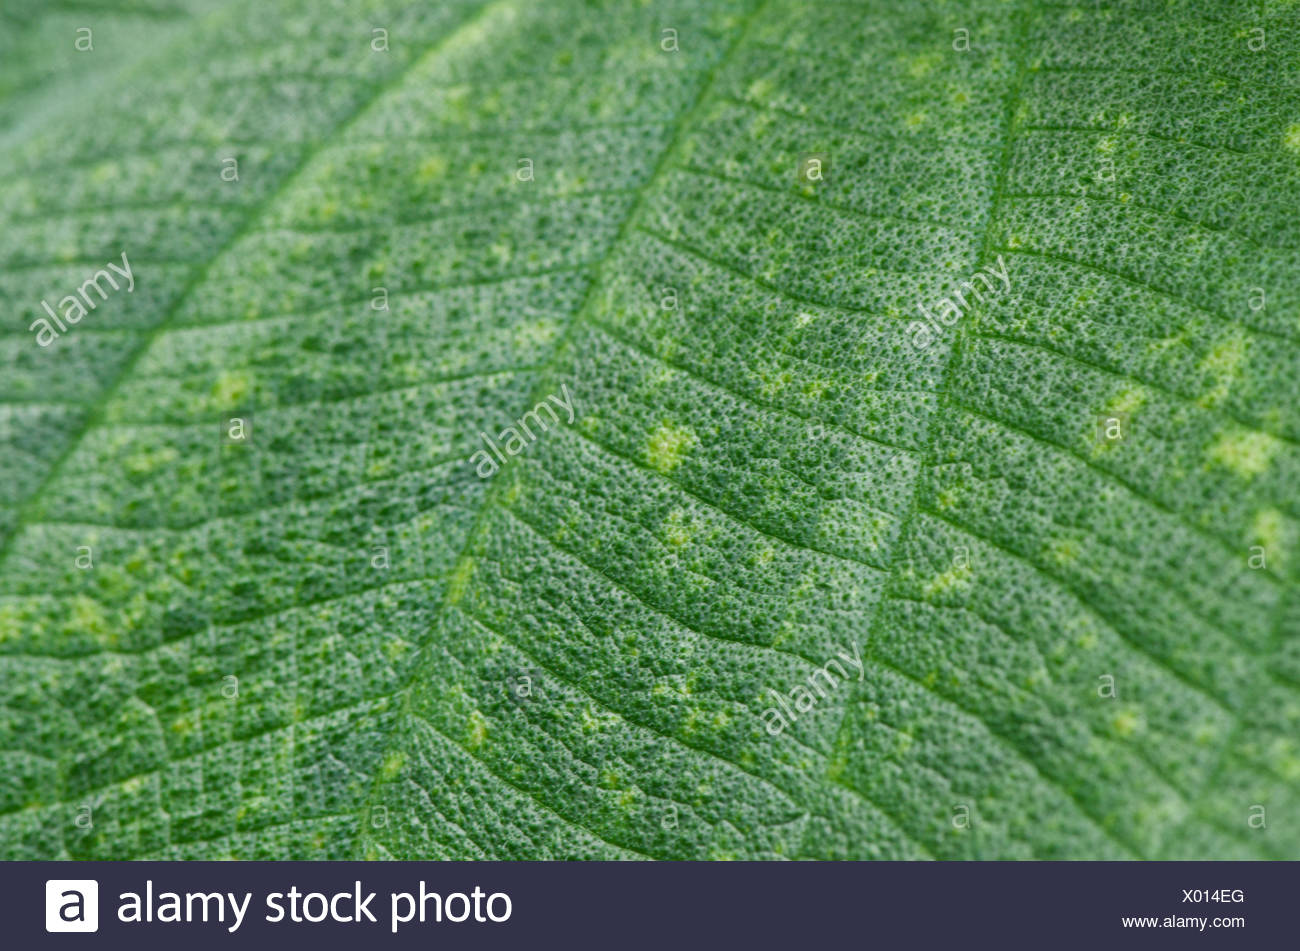 Plant leaf, close-up, - Stock Image